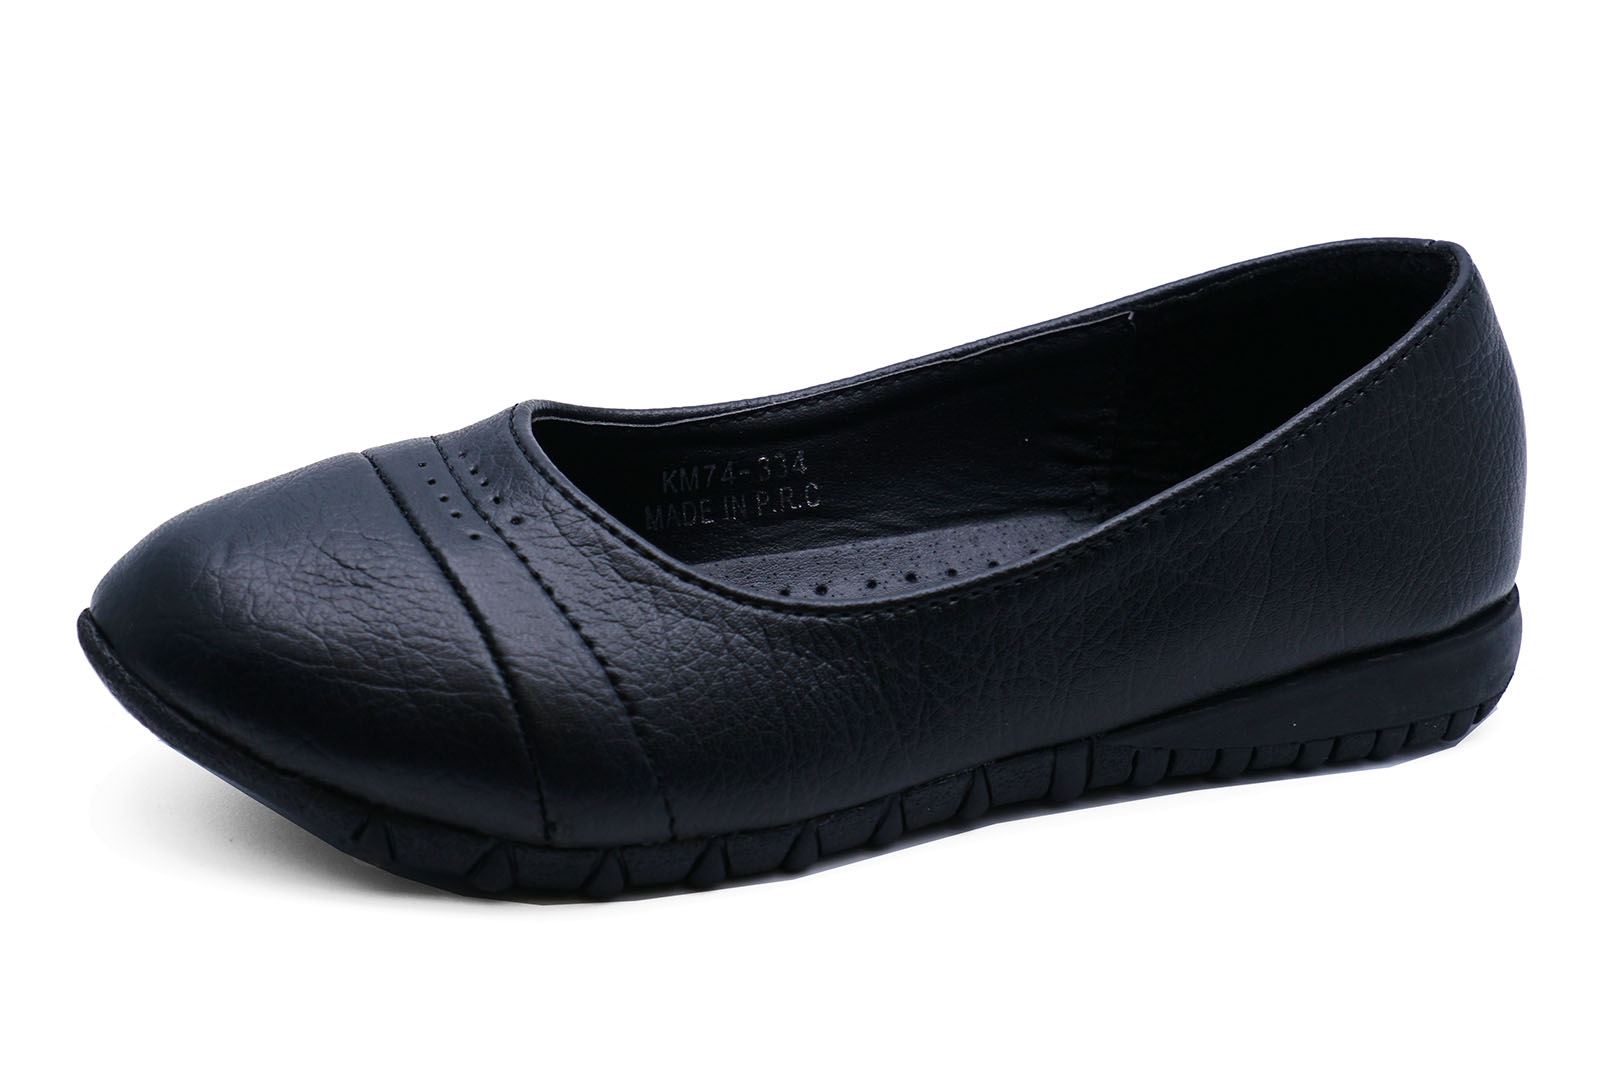 JUNIOR GIRLS BLACK SCHOOL SLIP-ON BALLERINA SMART PUMPS UNIFORM SHOES UK 12-3